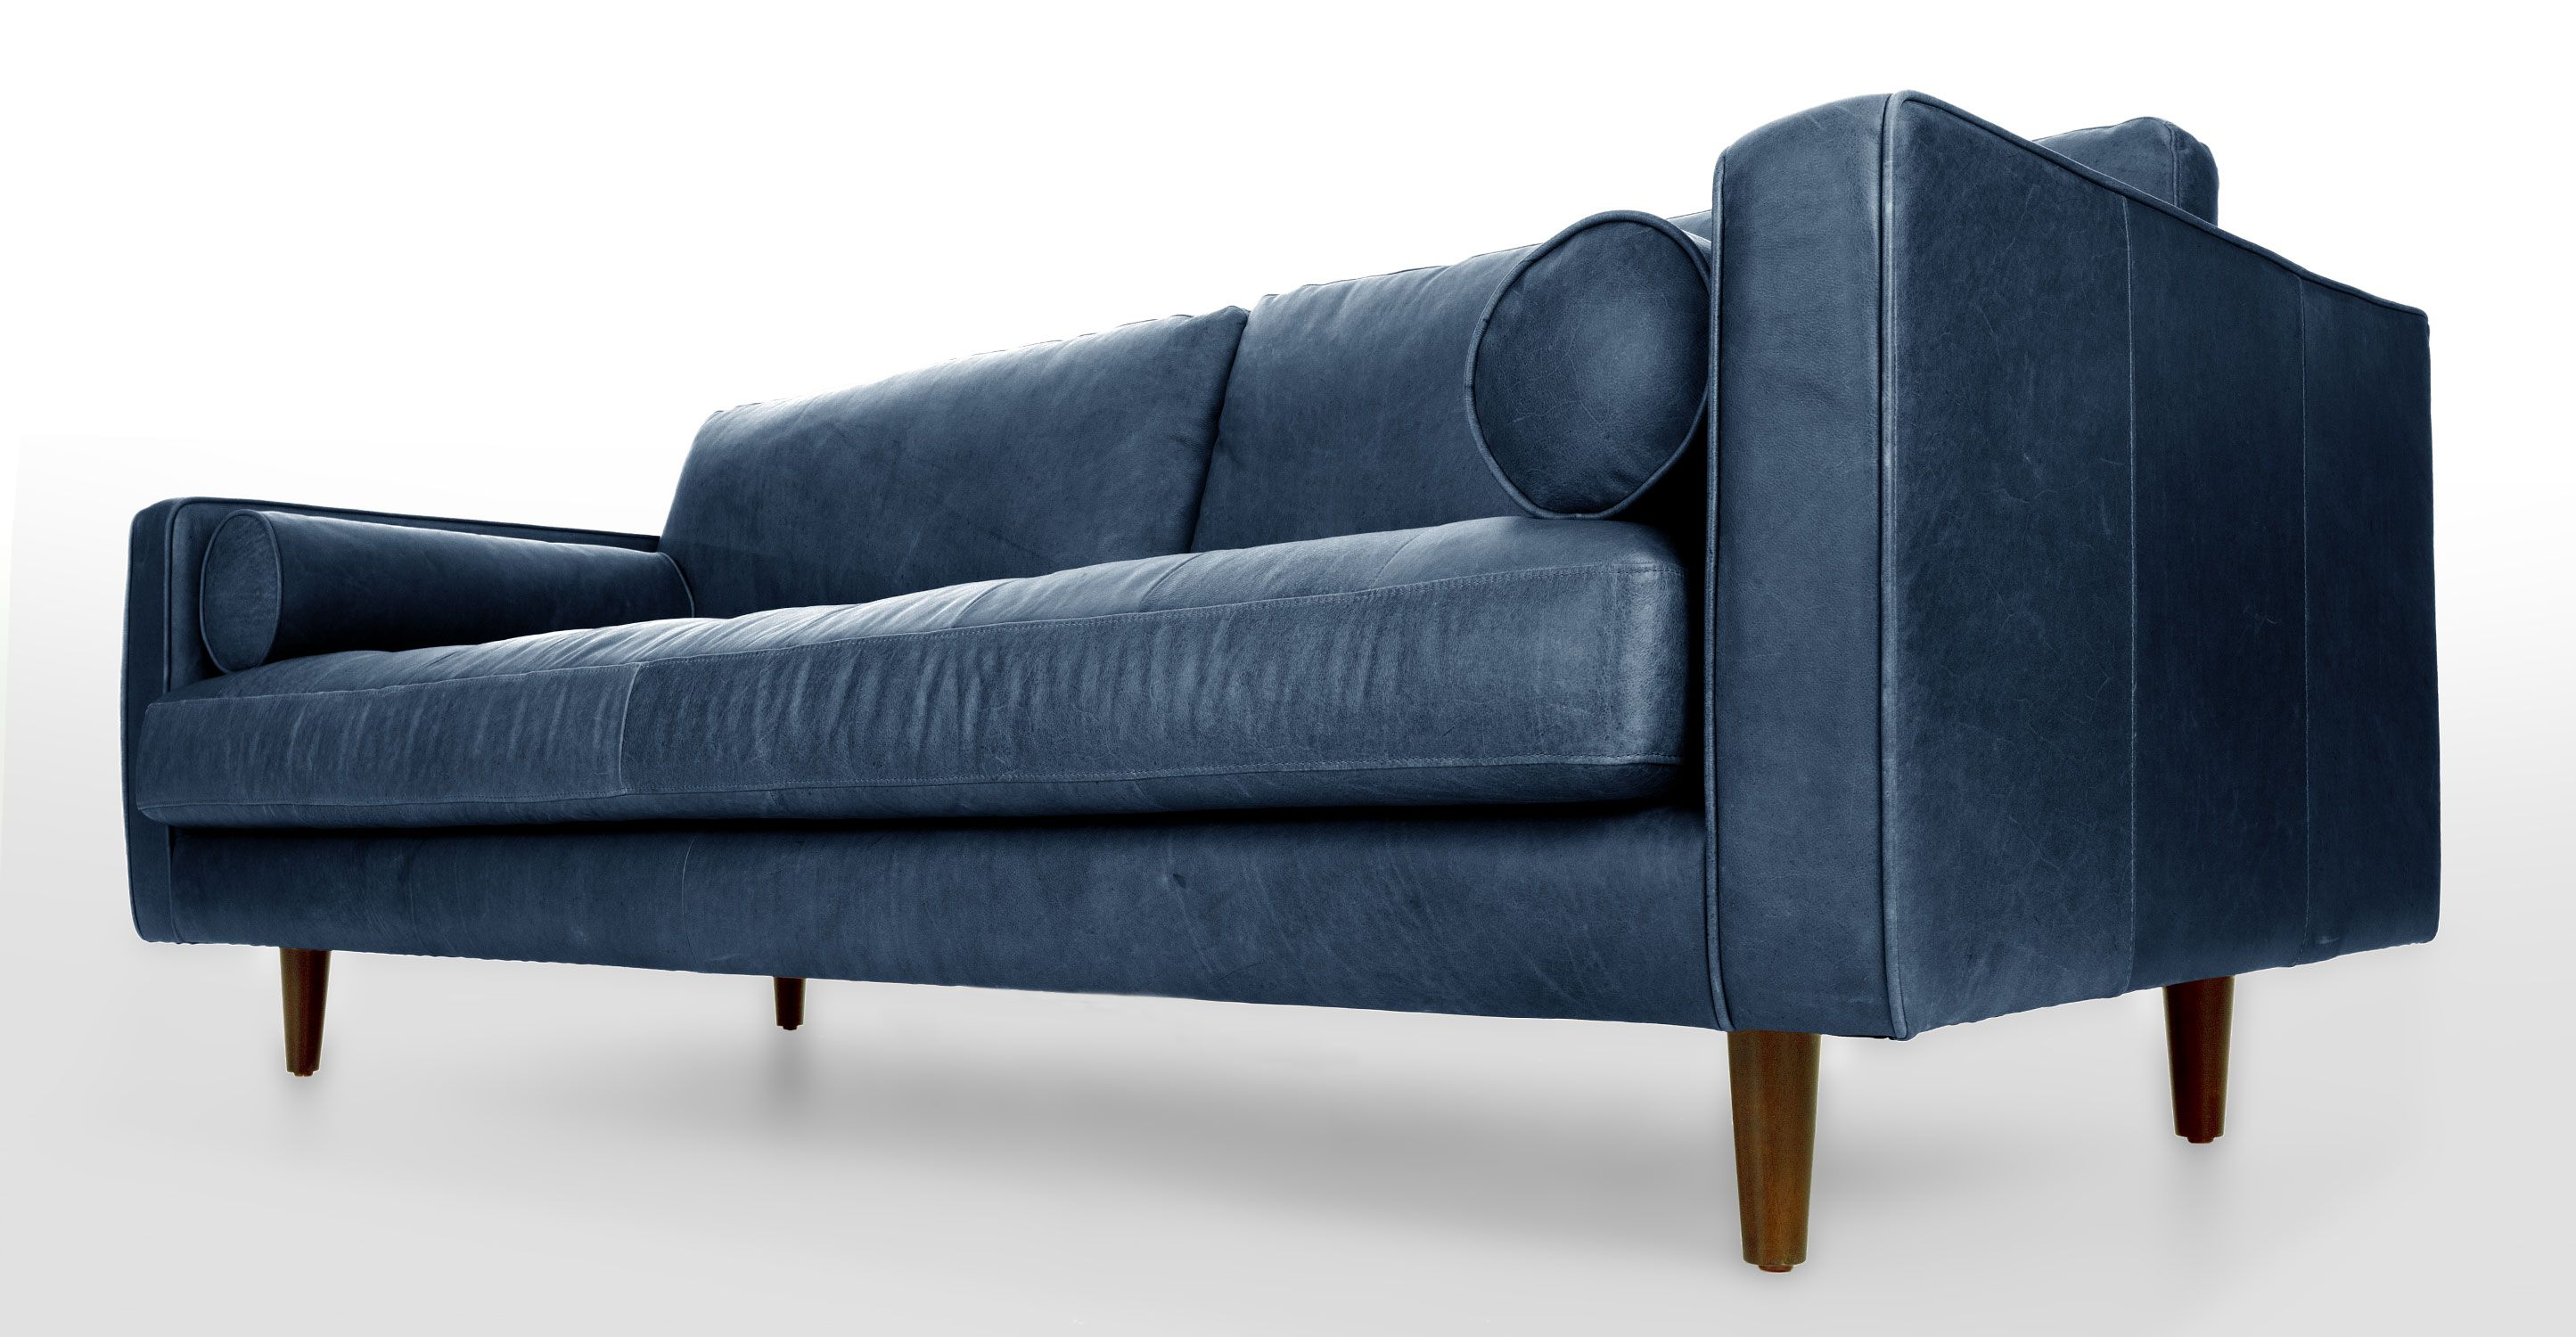 Sven Oxford Blue Sofa Modern Blue Sofa Blue Leather Sofa Blue Sofa